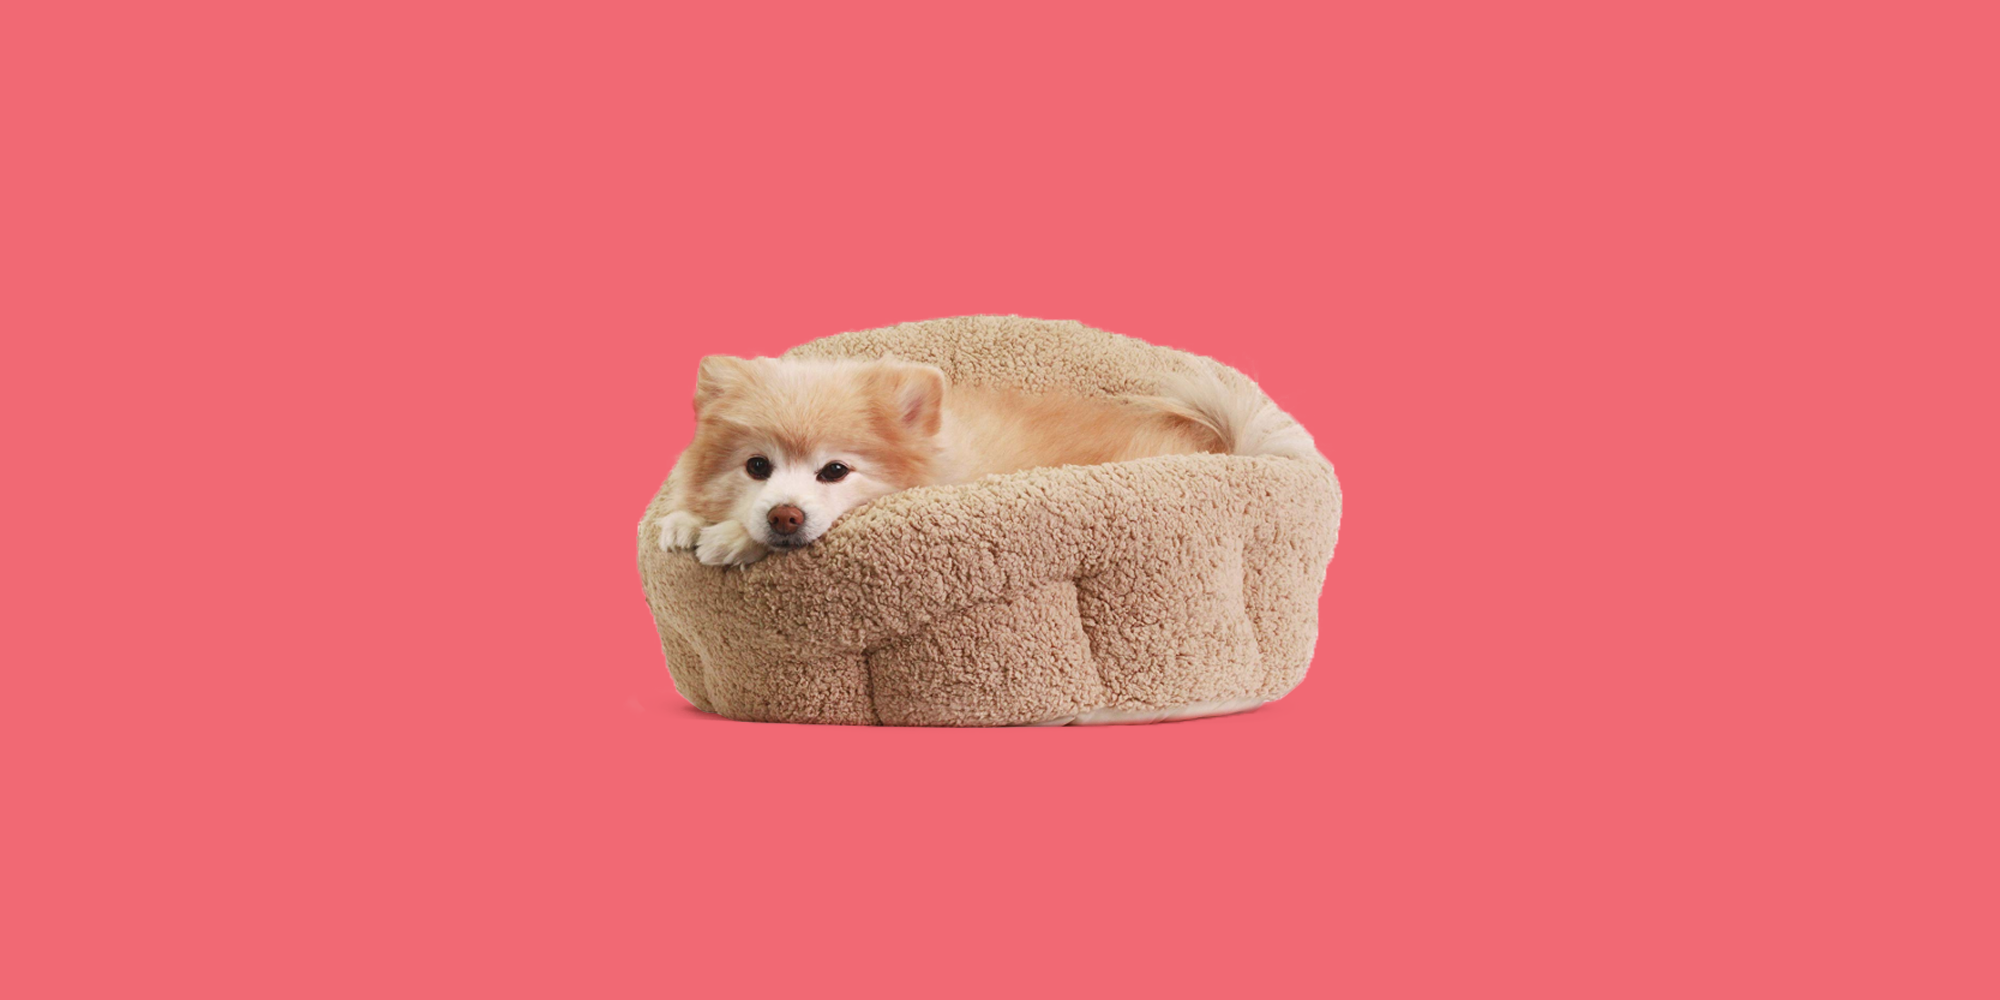 Living Room Couch Pet Bed for Cats or Small Dogs Comfortable Self Warming Pet Bed Cushion Machine Washable Waterproof Bottom